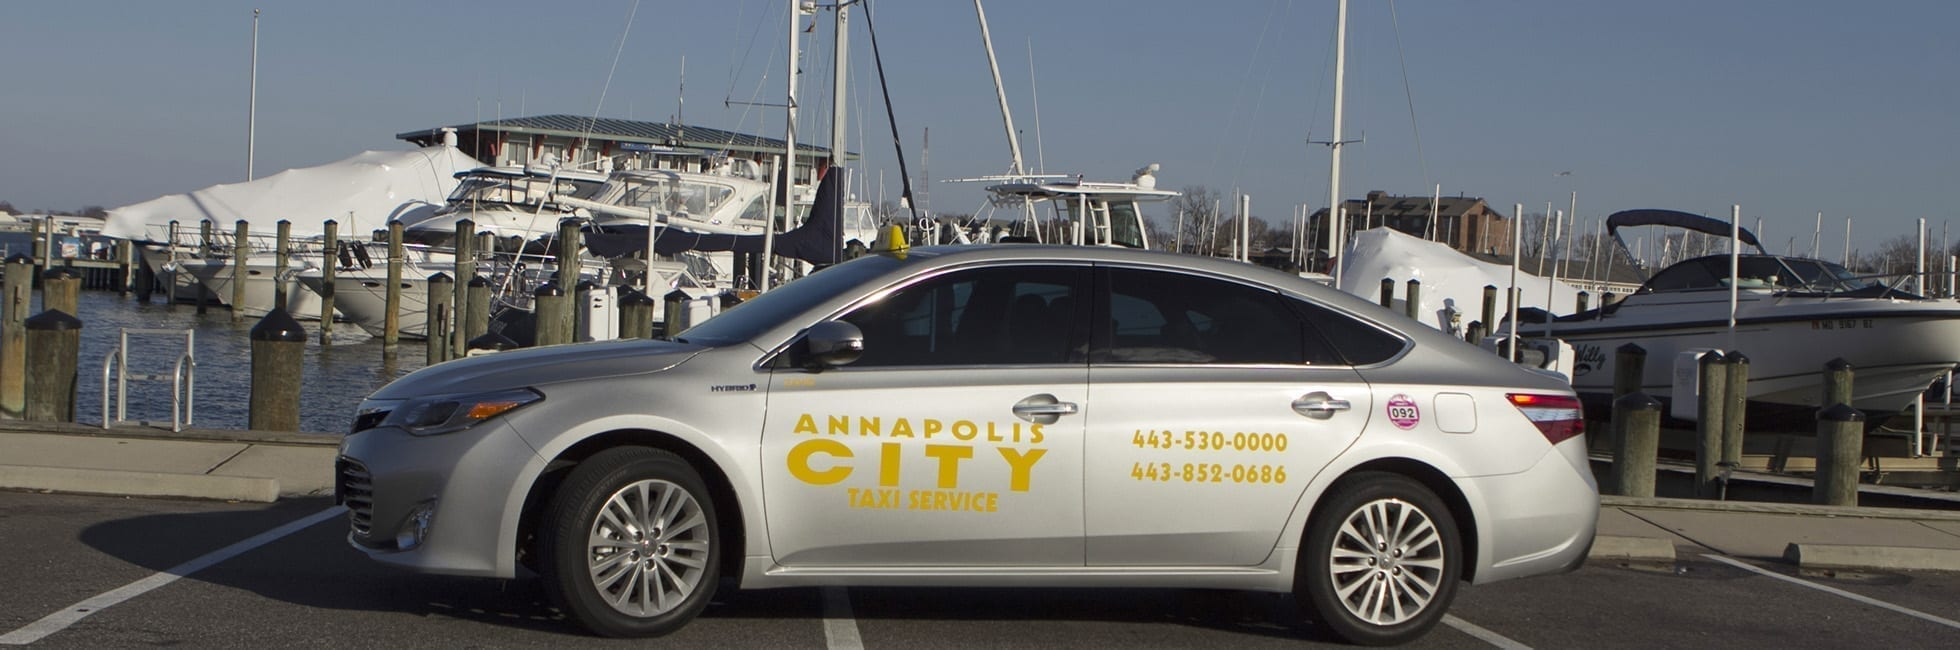 Annapolis City Taxi By the Yard Club